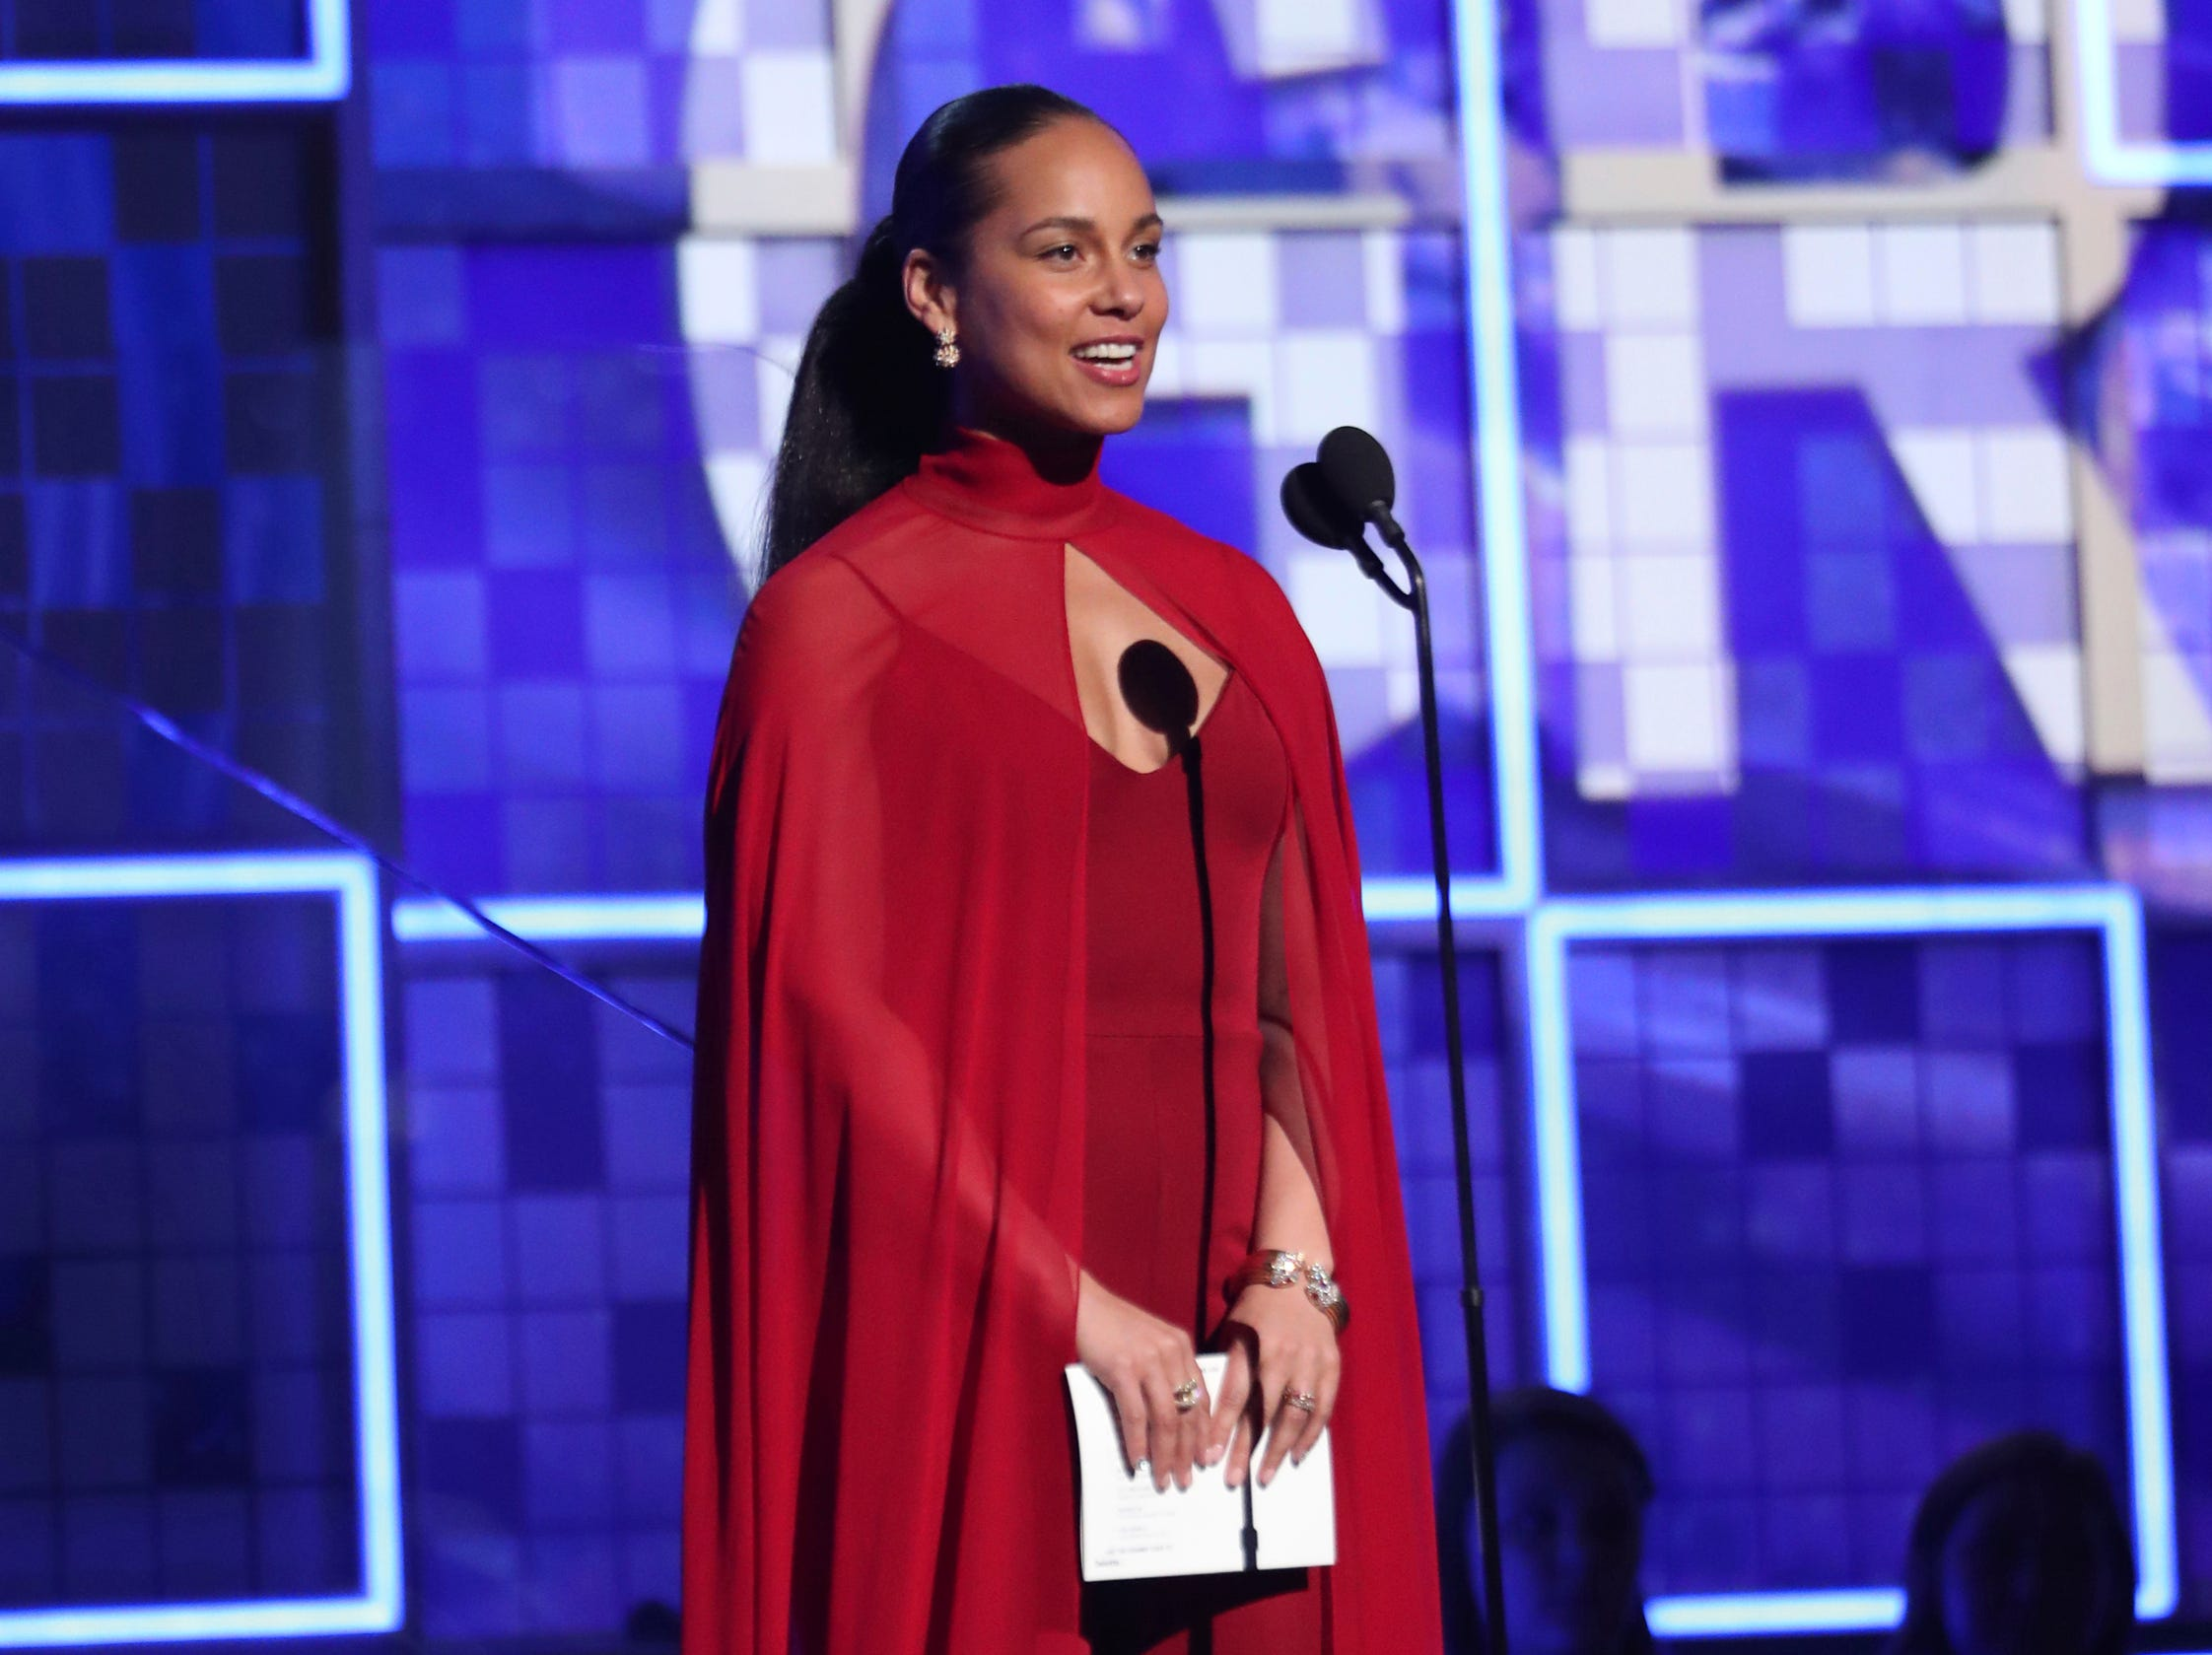 Alicia Keys presents the award for record of the year at the 61st annual Grammy Awards.